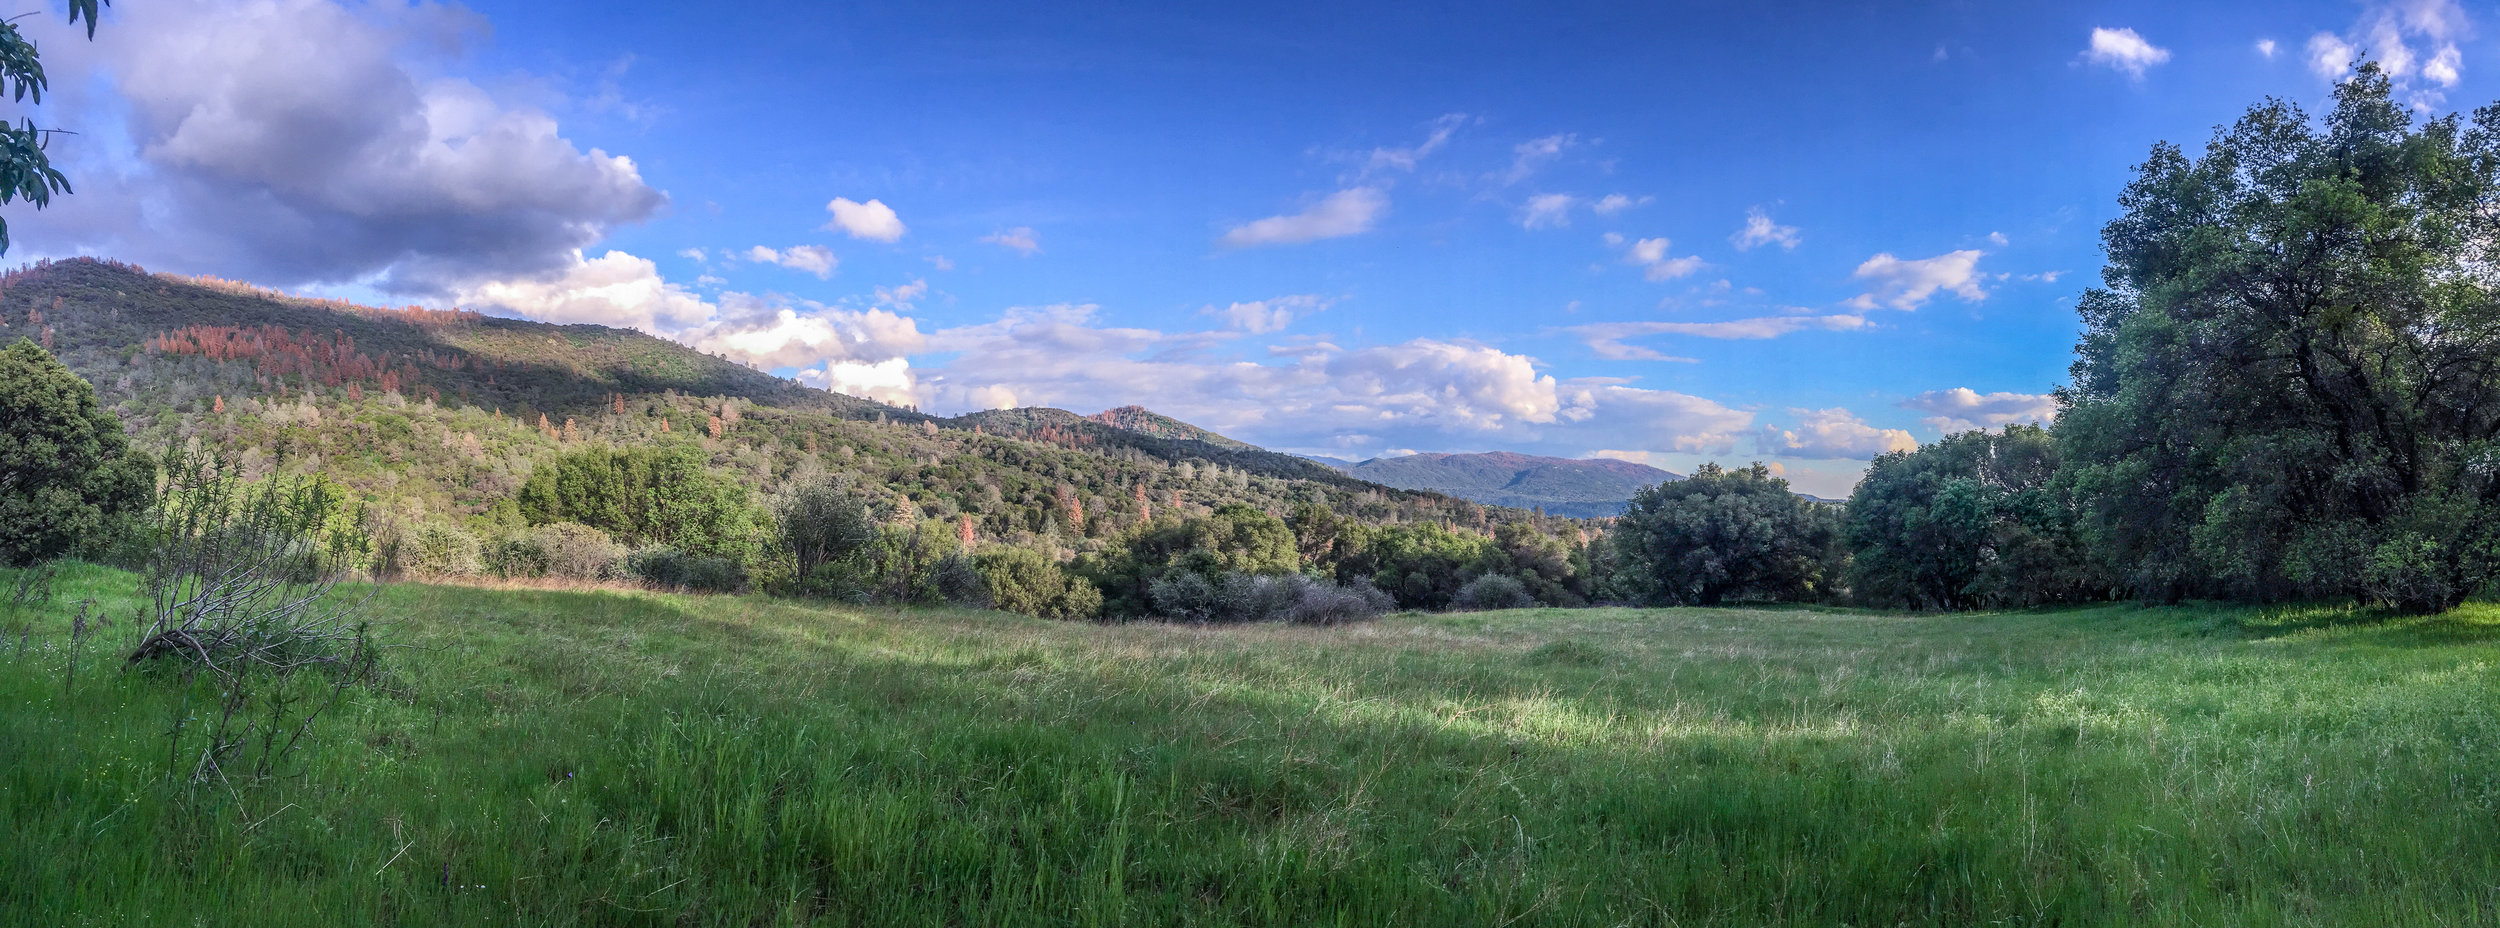 Most of the lots have views of the surrounding foothills.